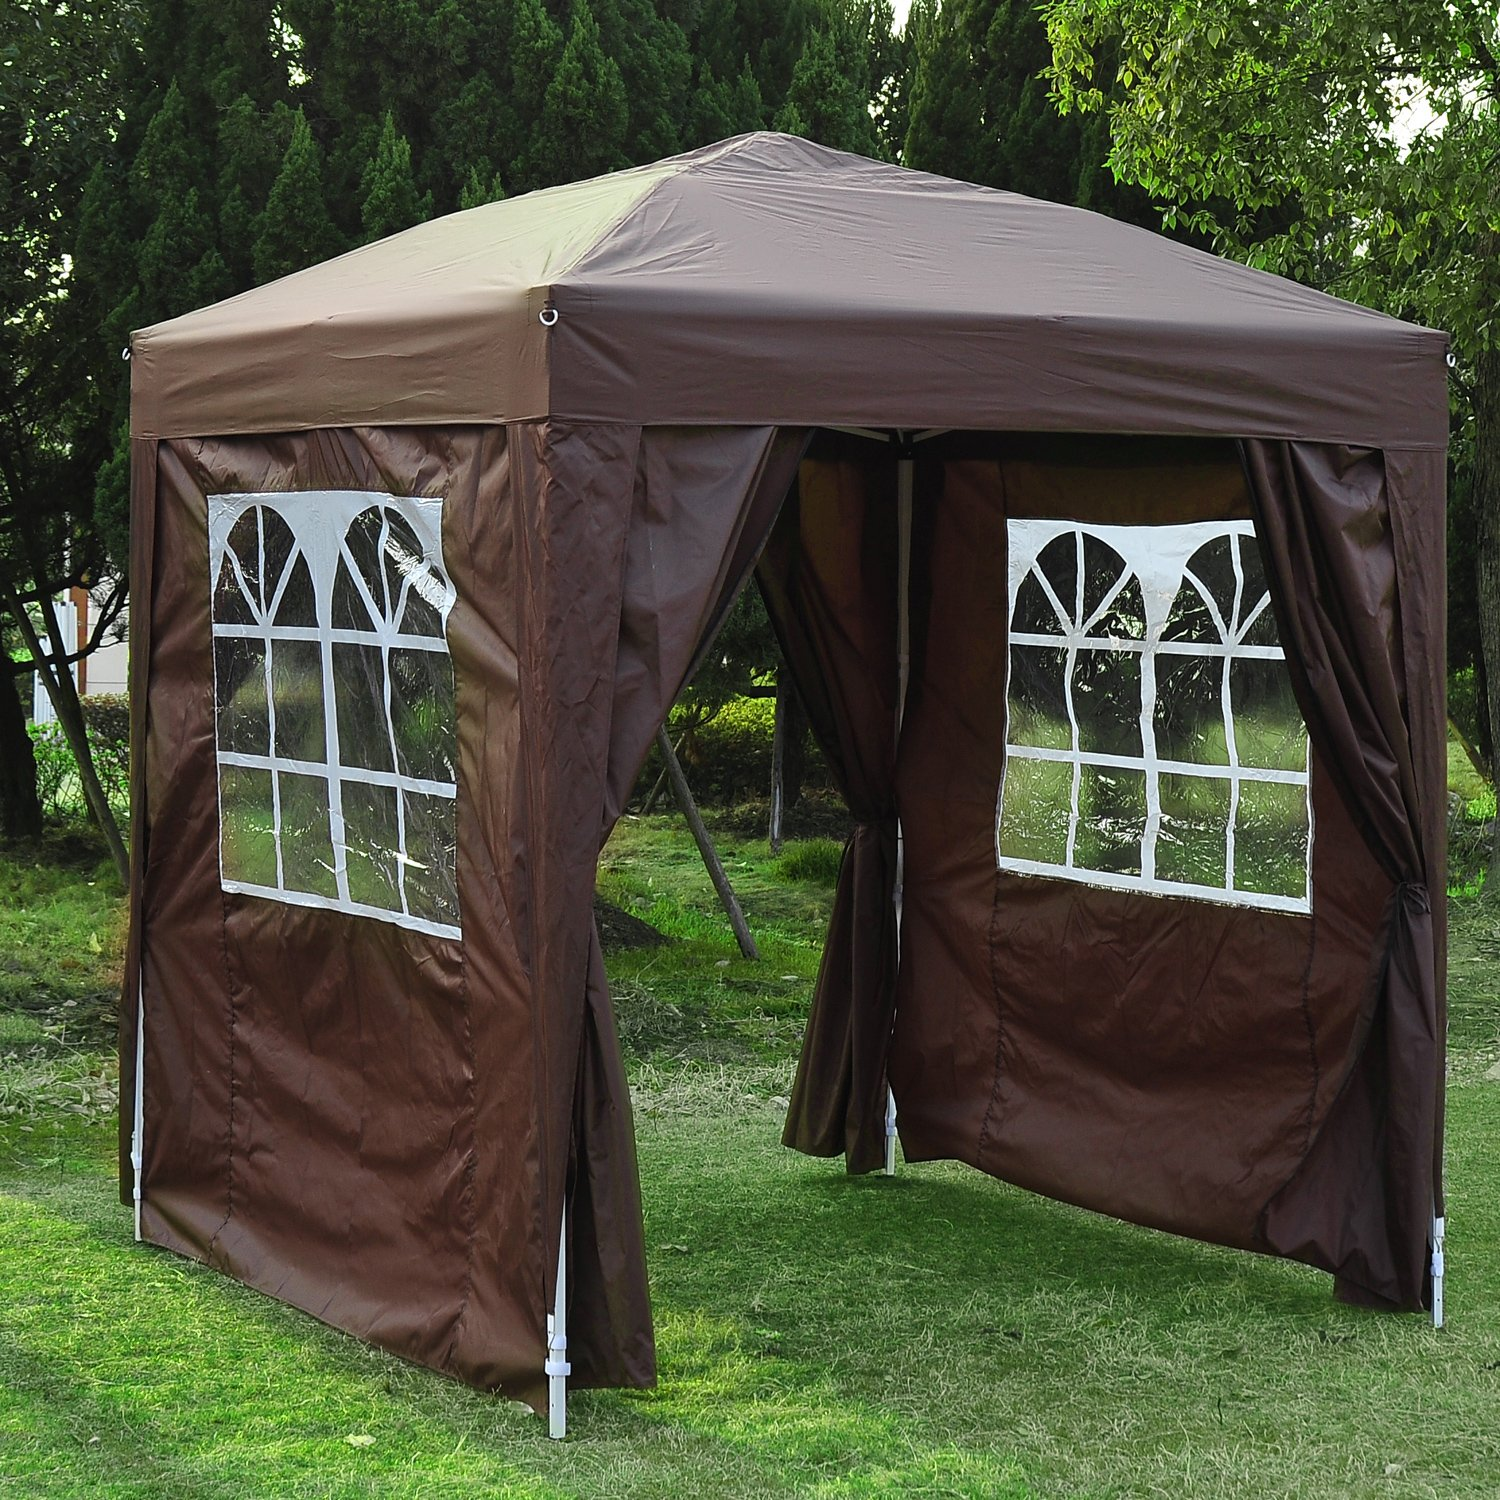 Outsunny 2m X Garden Heavy Duty Pop Up Gazebo Marquee Party Tent Wedding Awning Canopy New With Free Carrying Case Green Removable 2 Walls Windows